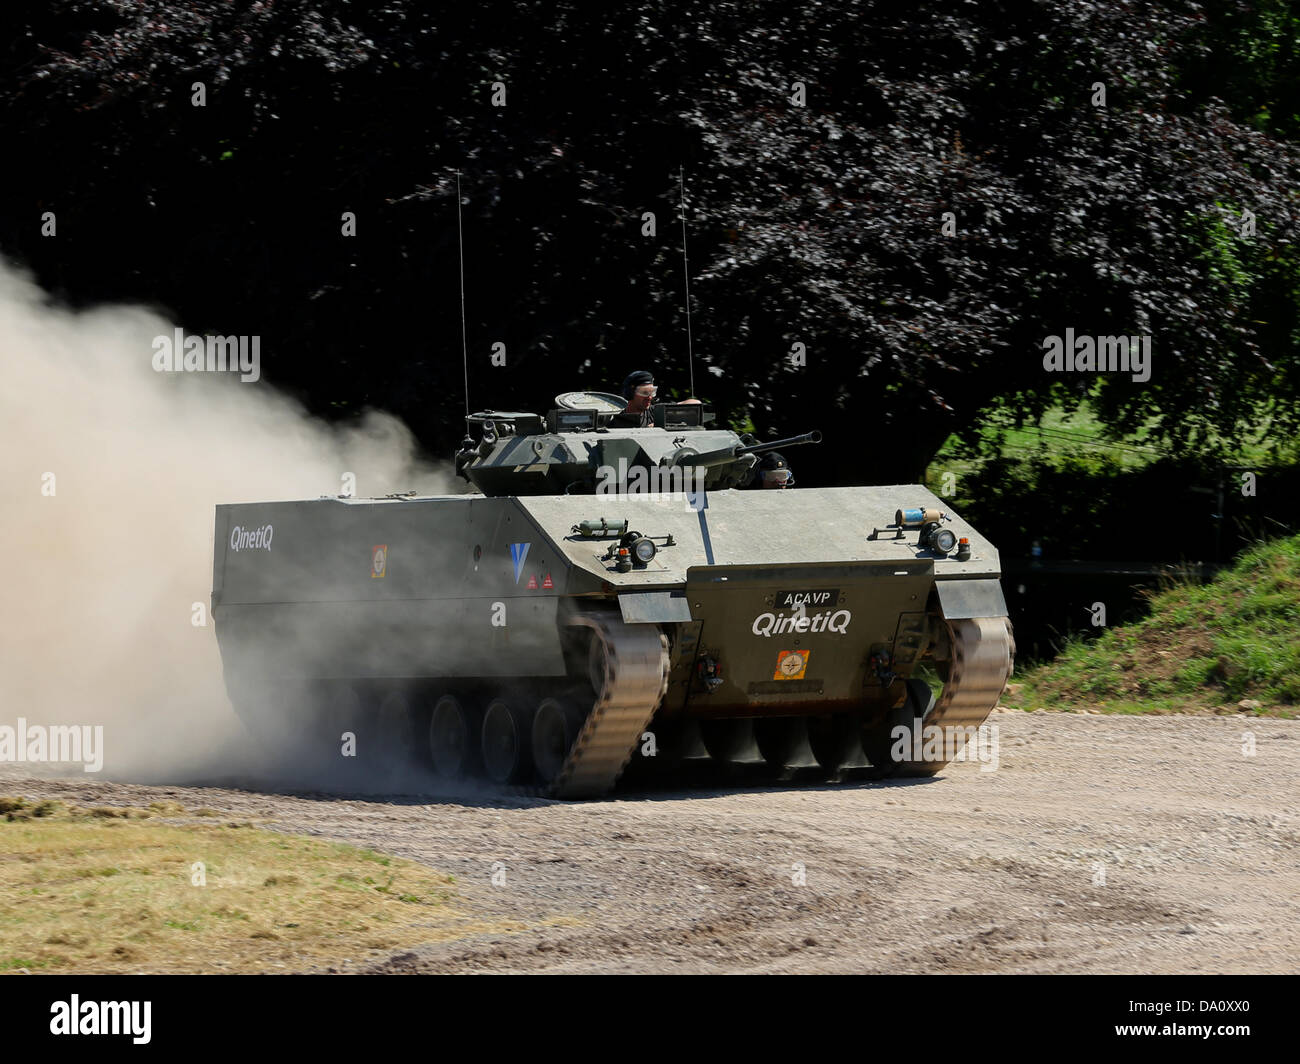 Bovington, UK. 29th June, 2013. The Advanced Composite Armoured Vehicle Platform (ACAVP) is the first composite - Stock Image